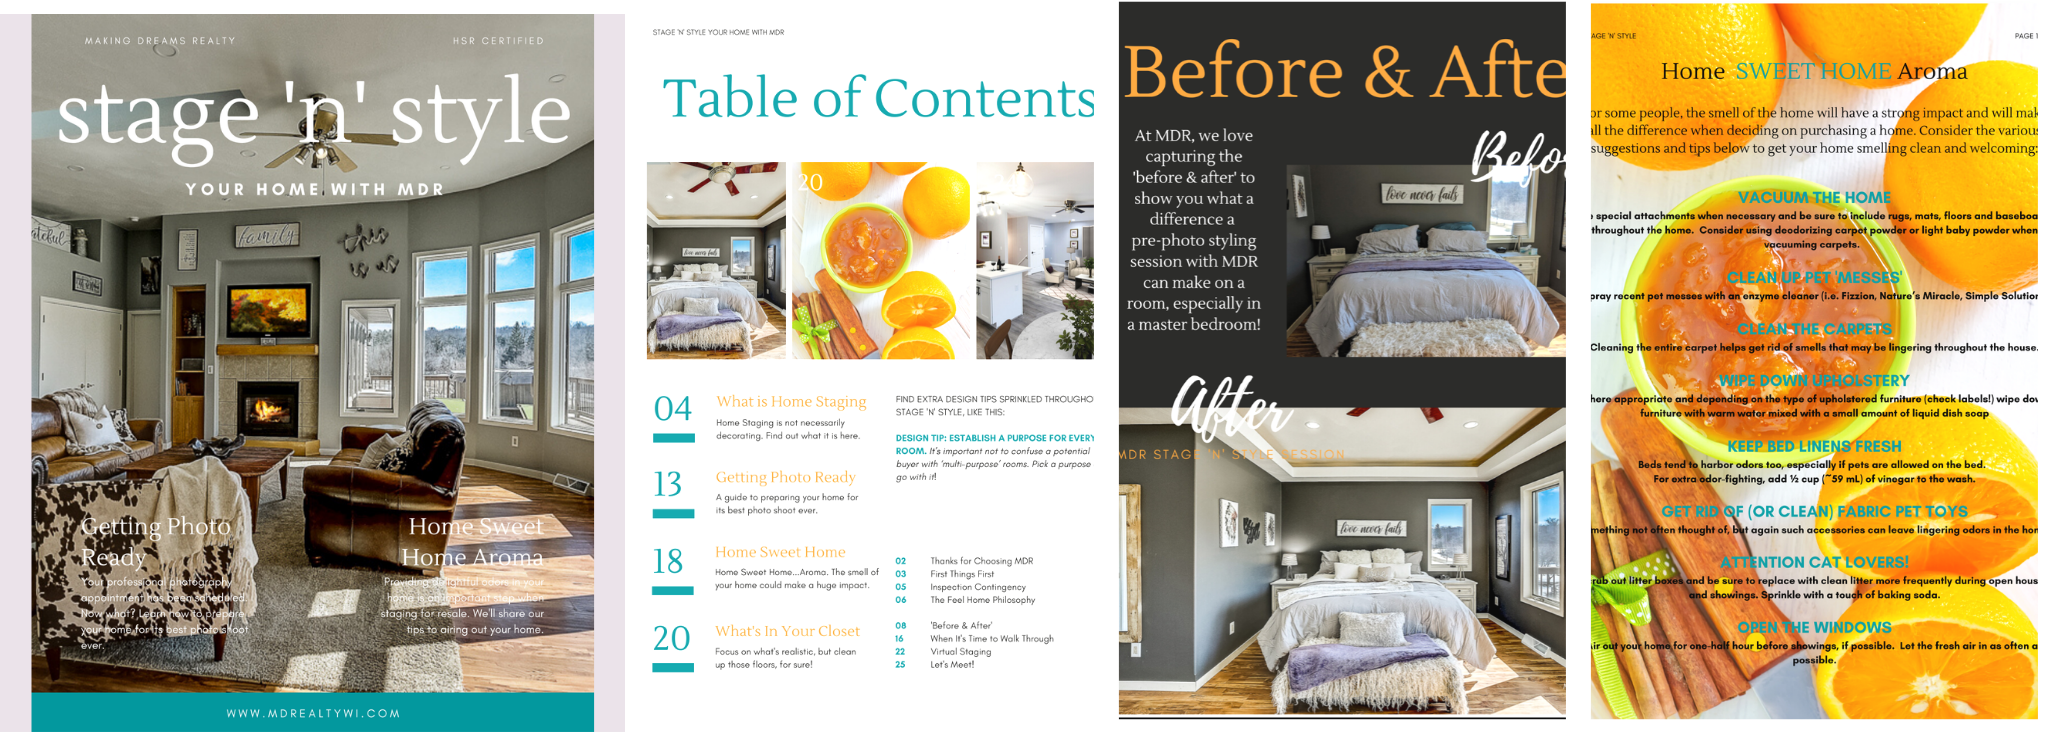 Ultimate guide to staging your home. Presented by MAKING DREAMS Realty